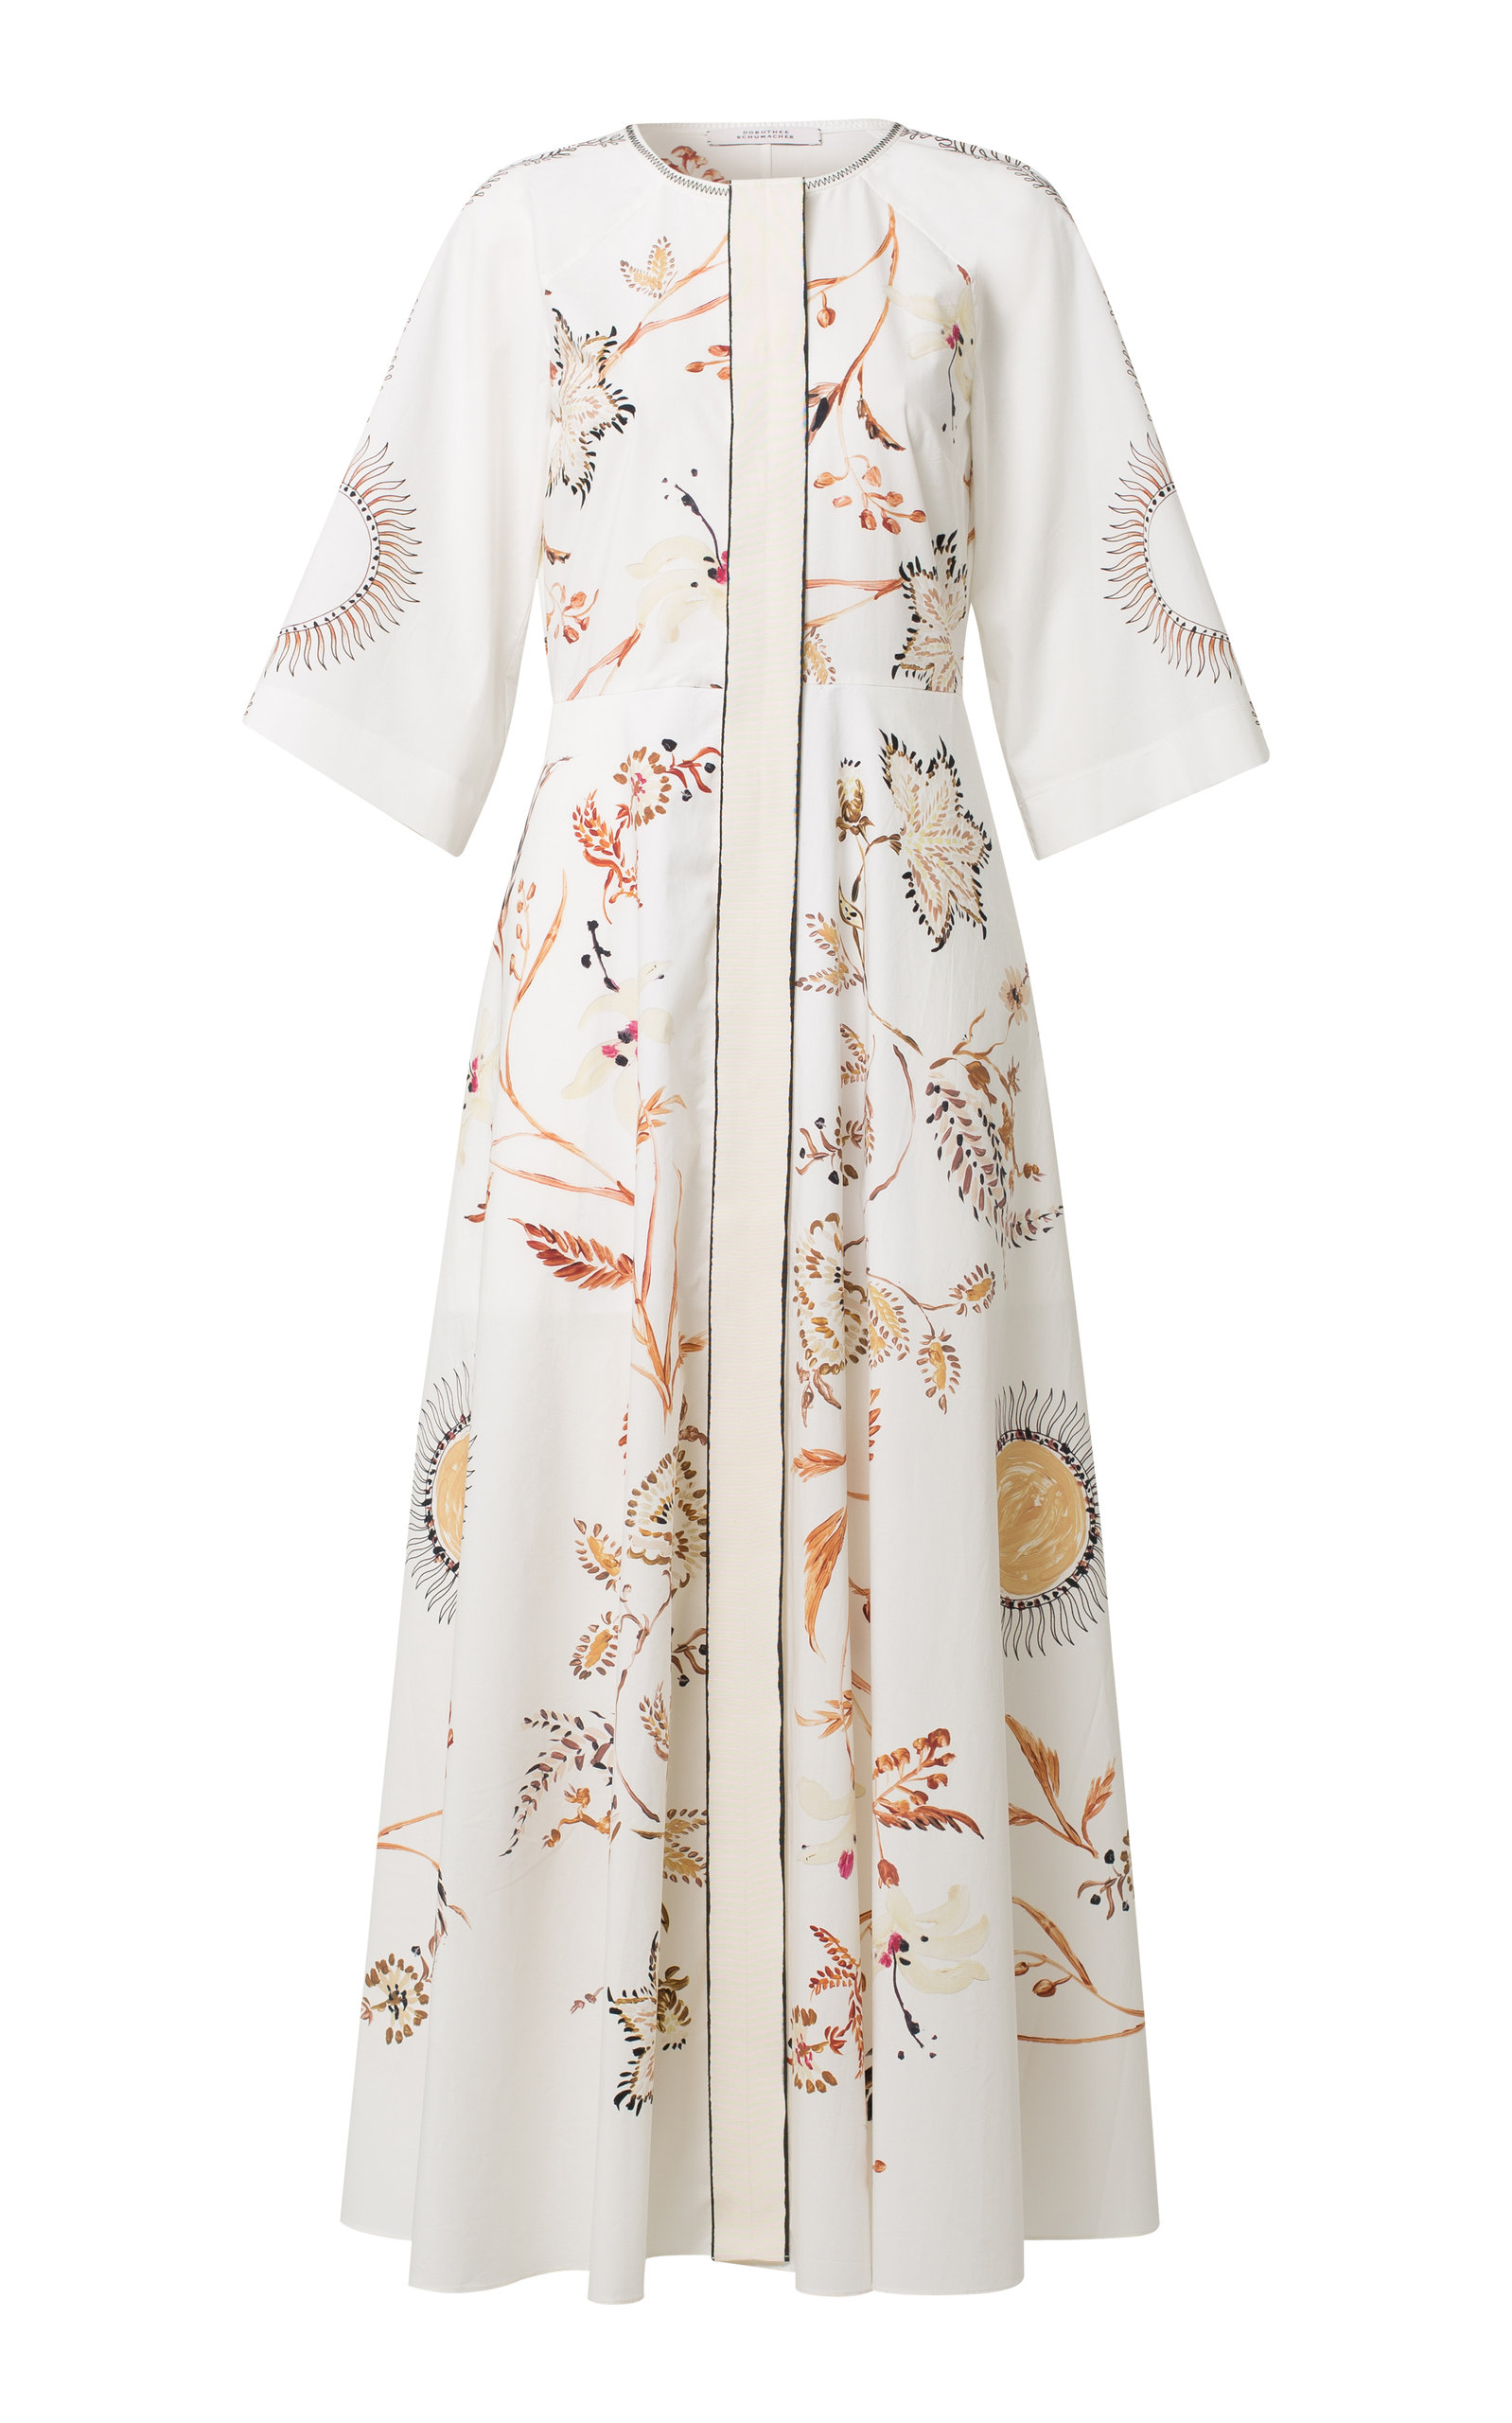 Dorothee Schumacher HAVANA DREAM COTTON MAXI-DRESS